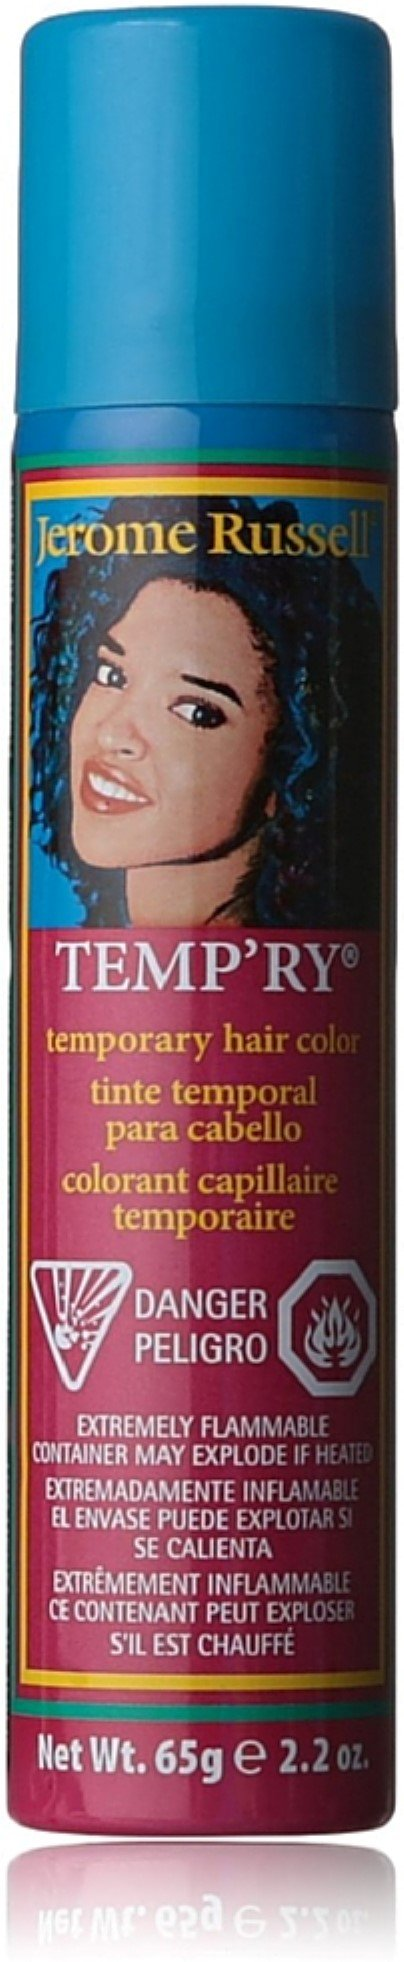 Jerome Russell Temporary Spray, Red Wine 2.2 oz (Pack of 12) by Jerome Russell